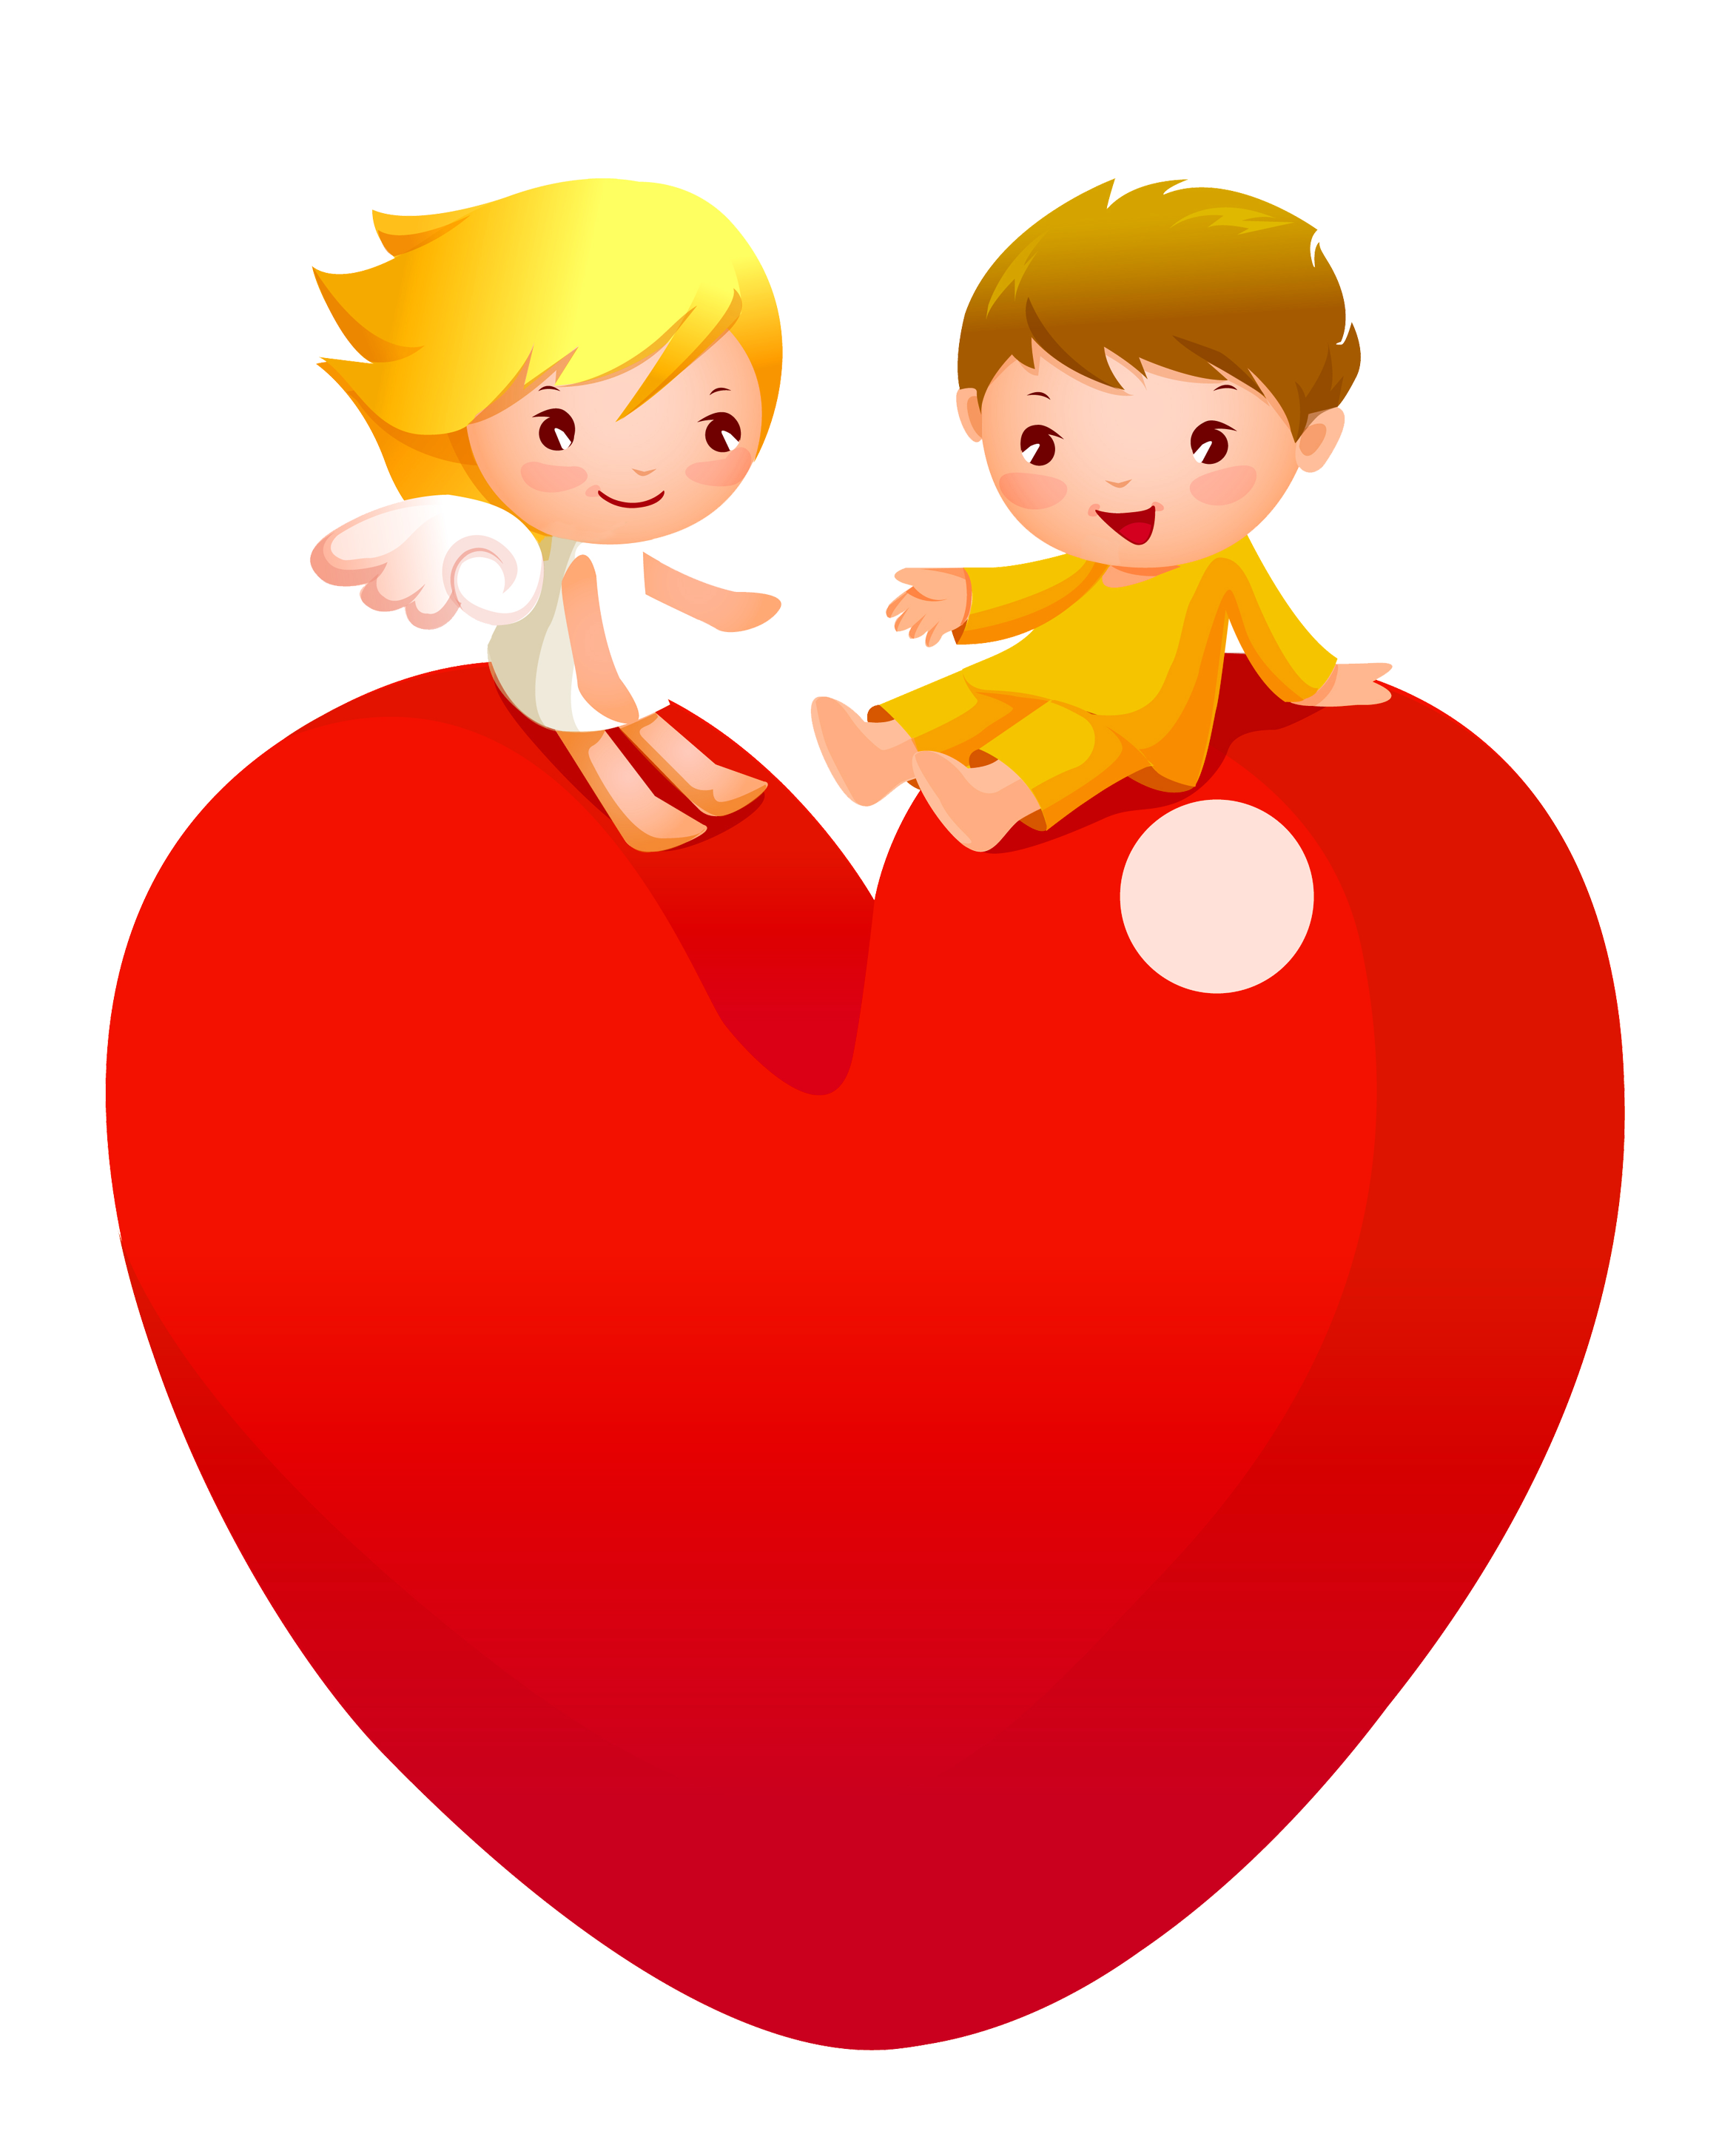 Red with angels png. Clipart heart winter